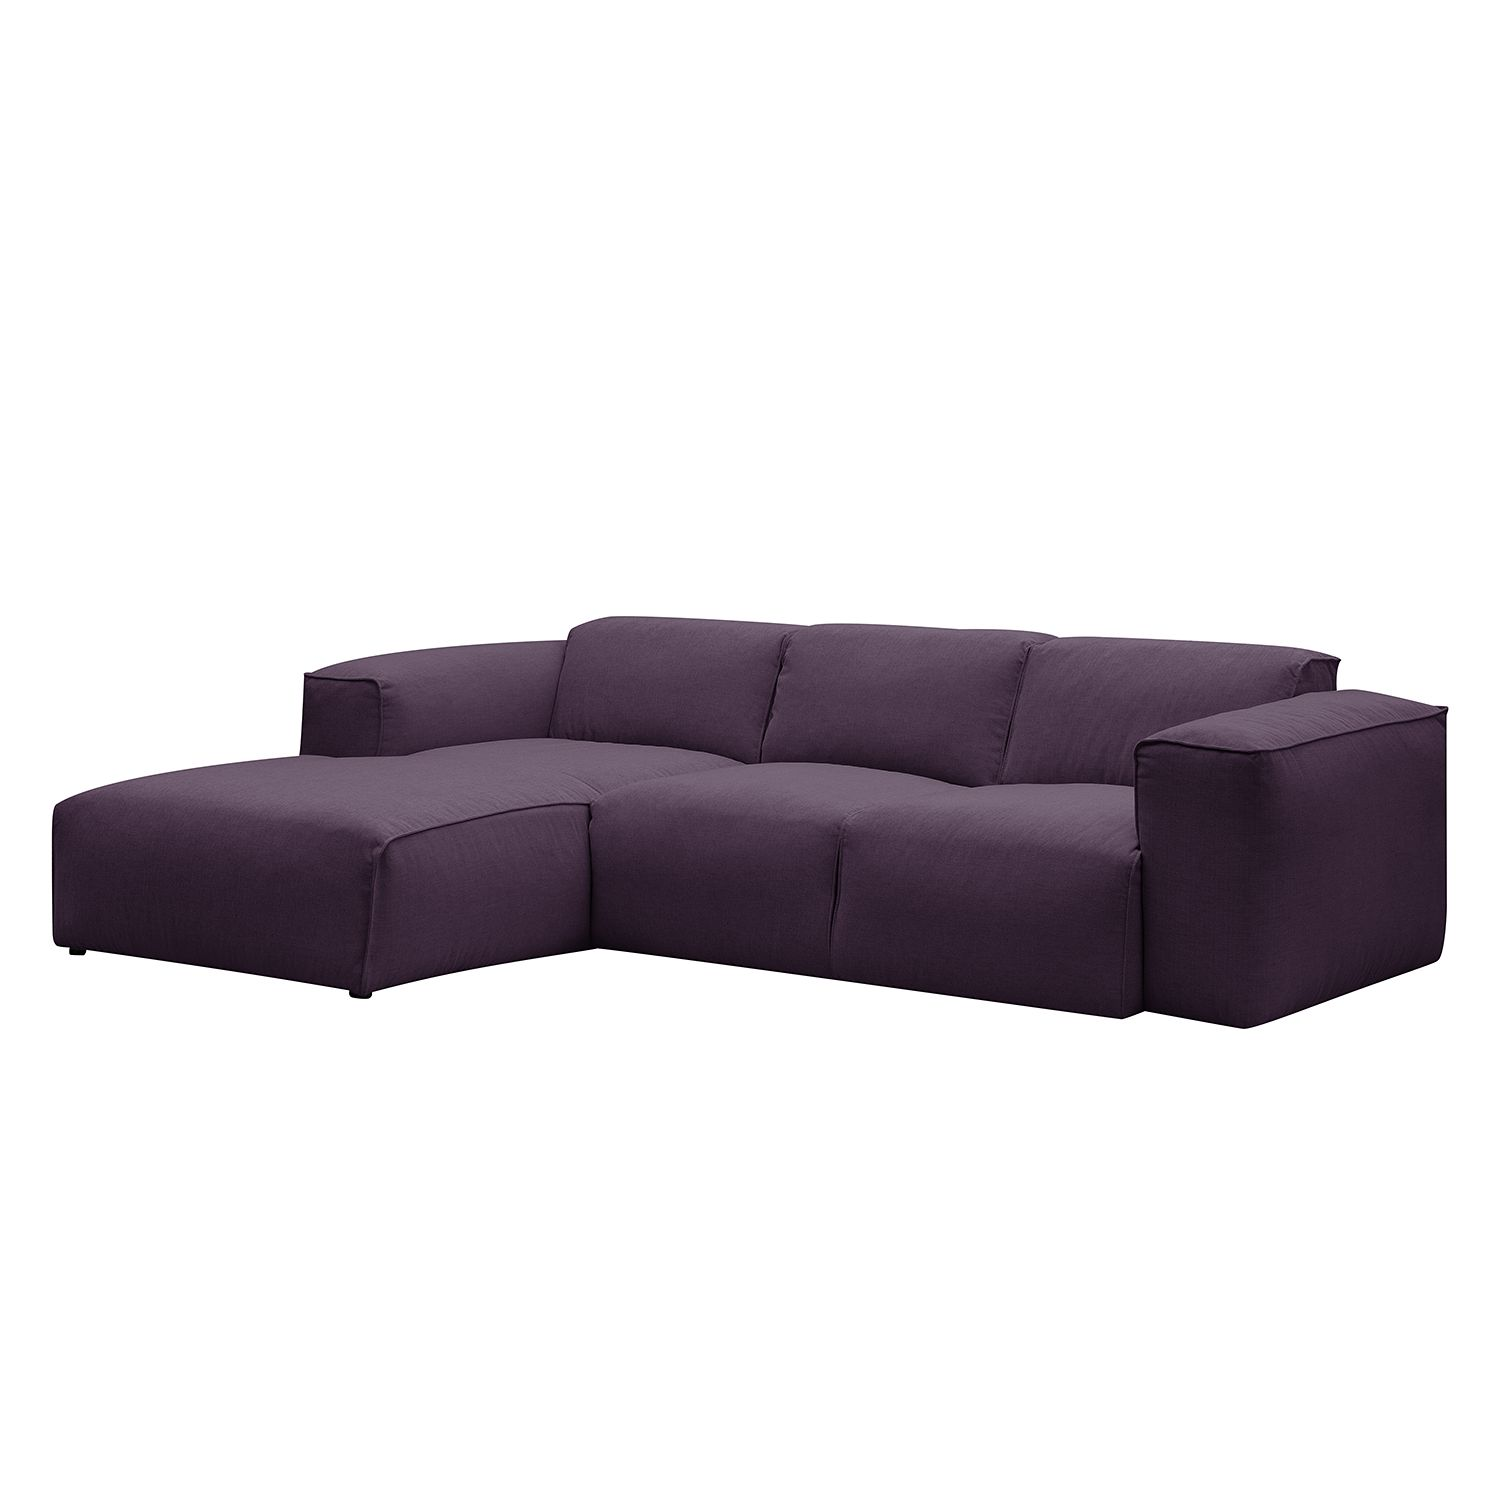 ecksofa hudson iii webstoff longchair ottomane davorstehend links stoff anda ii violett. Black Bedroom Furniture Sets. Home Design Ideas